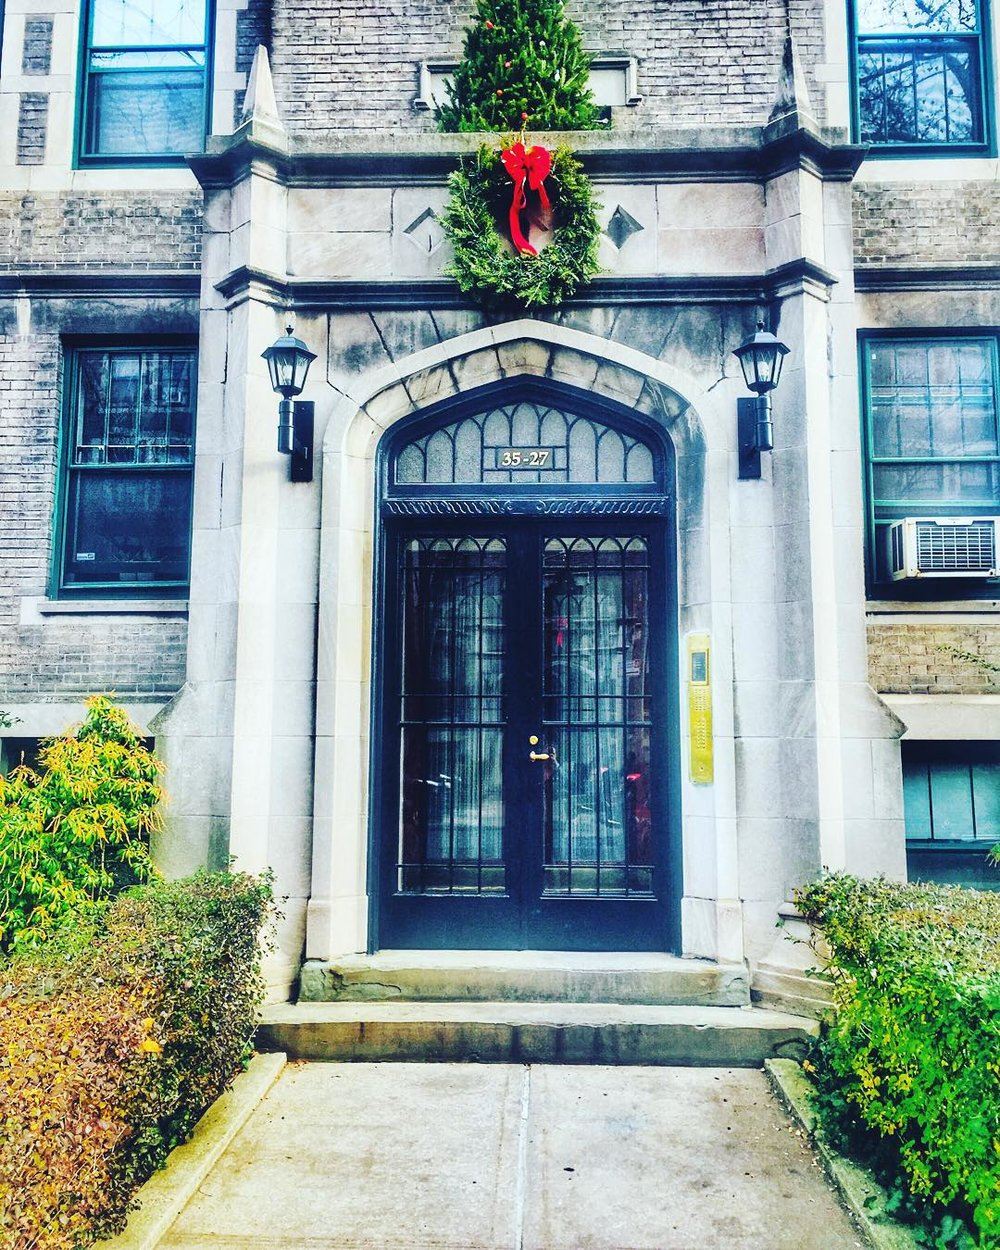 Obsessed with the Greystones on 80th Street in Jackson Heights.  Last week's stroll through JH led me to @espresso77newyork for a meeting with @davidorellanaco, Christmas shopping at @lockwoodjacksonheights & running into @jacksonheightsqns!           #jacksonheights #jacksonheightsny #apartmentgoals #queenscapes #heartofqueens #queens #queensnyc #queensnyc  (at 82st Jackson Heights, Queens)